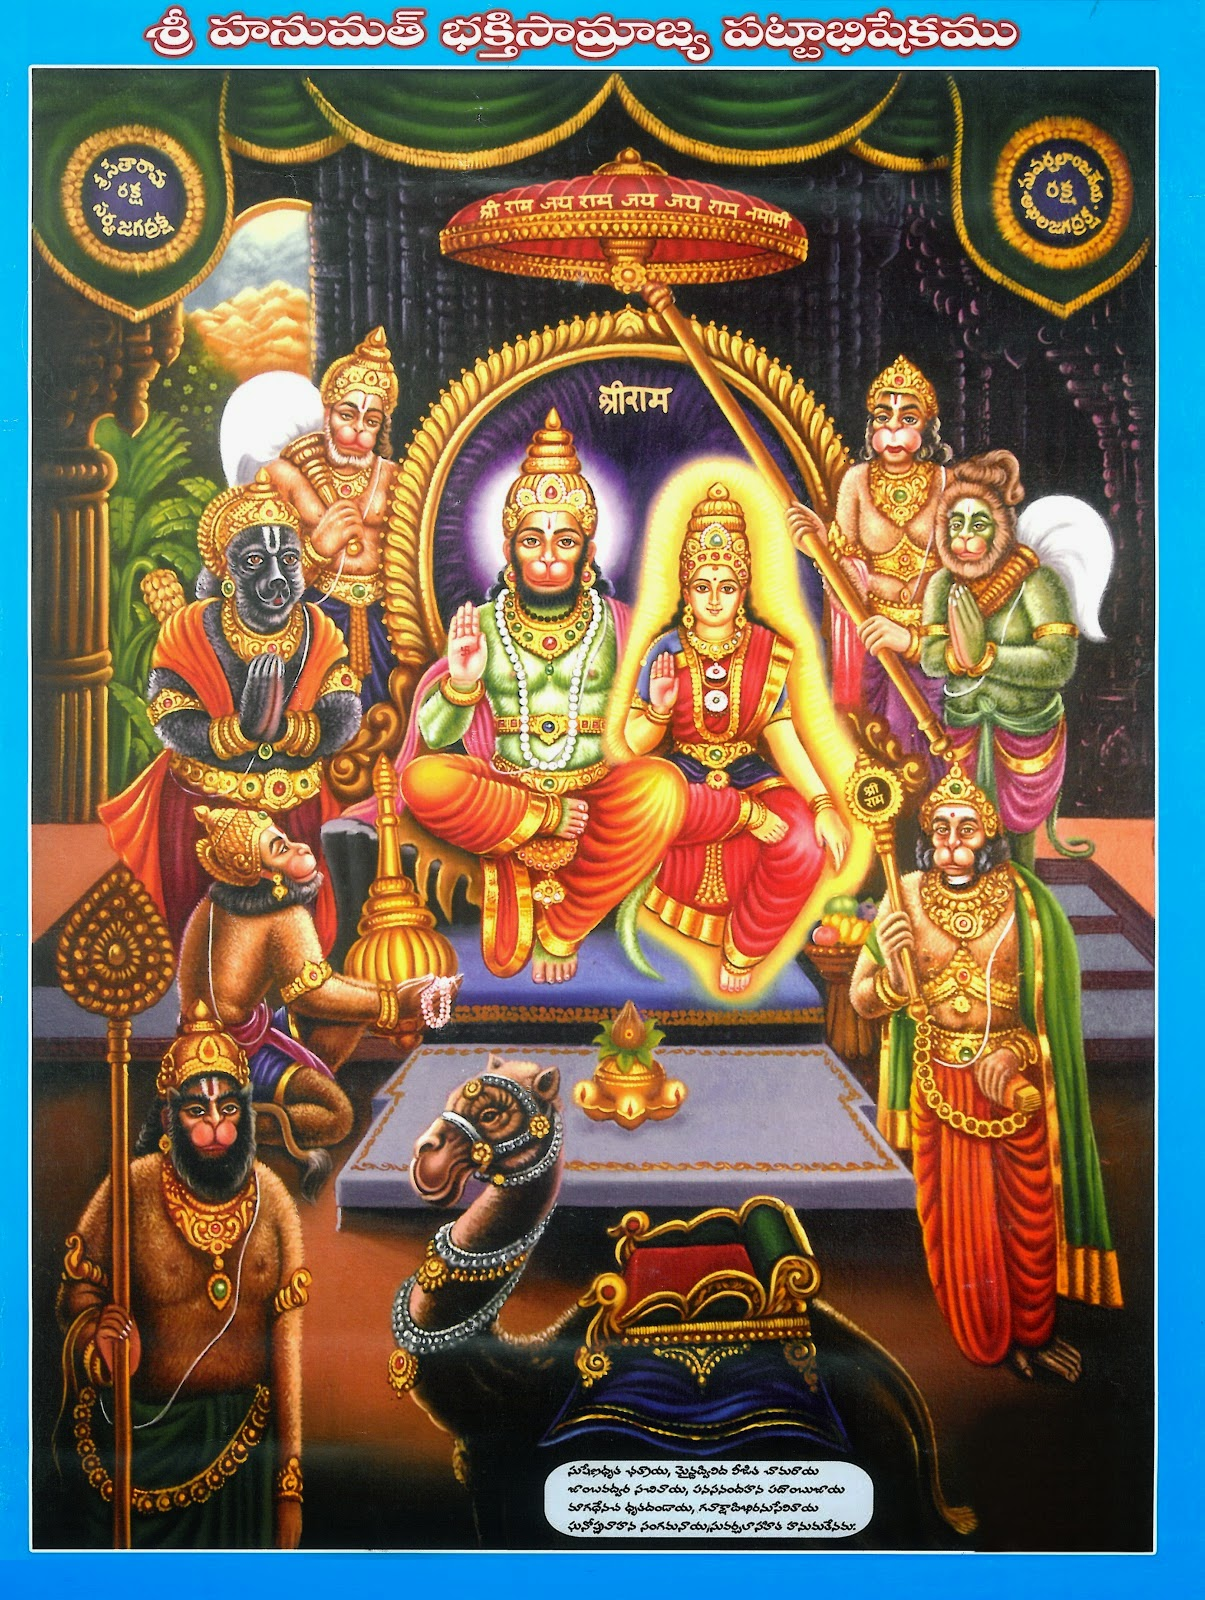 Shree Hanuman and Suvarchala.